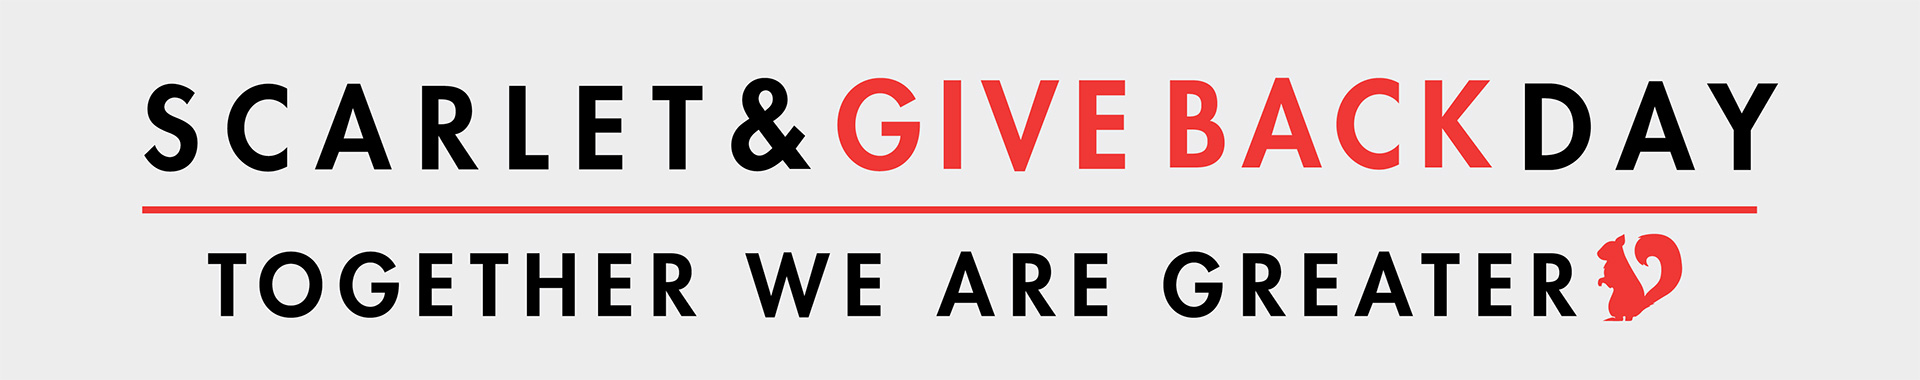 Text: Scarlet & Give Back Day. Together we are Greater.